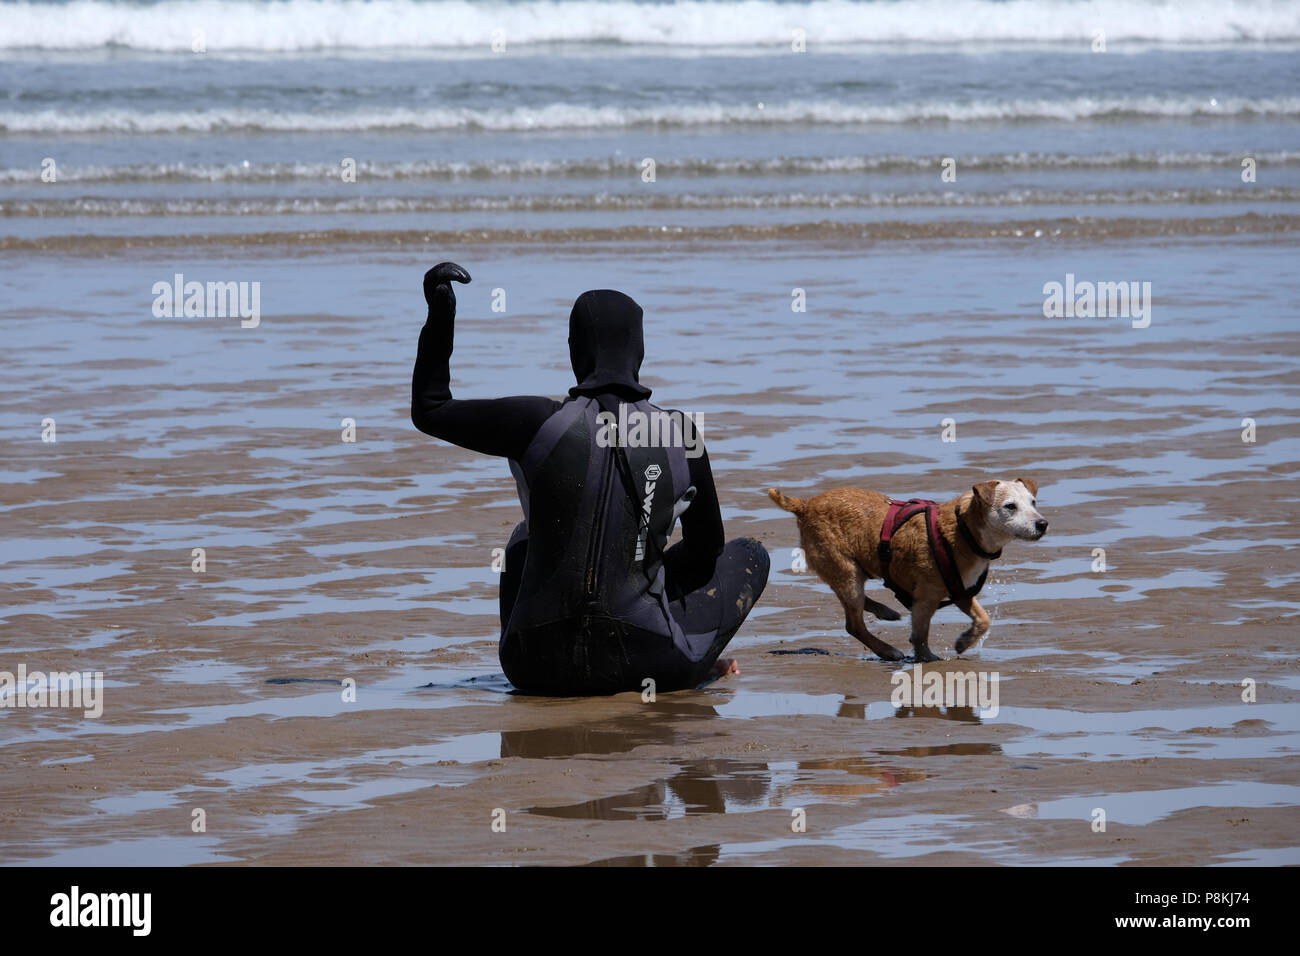 Man with back to camera throwing ball over his back and brown dog chasing after it with face to camera - Stock Image